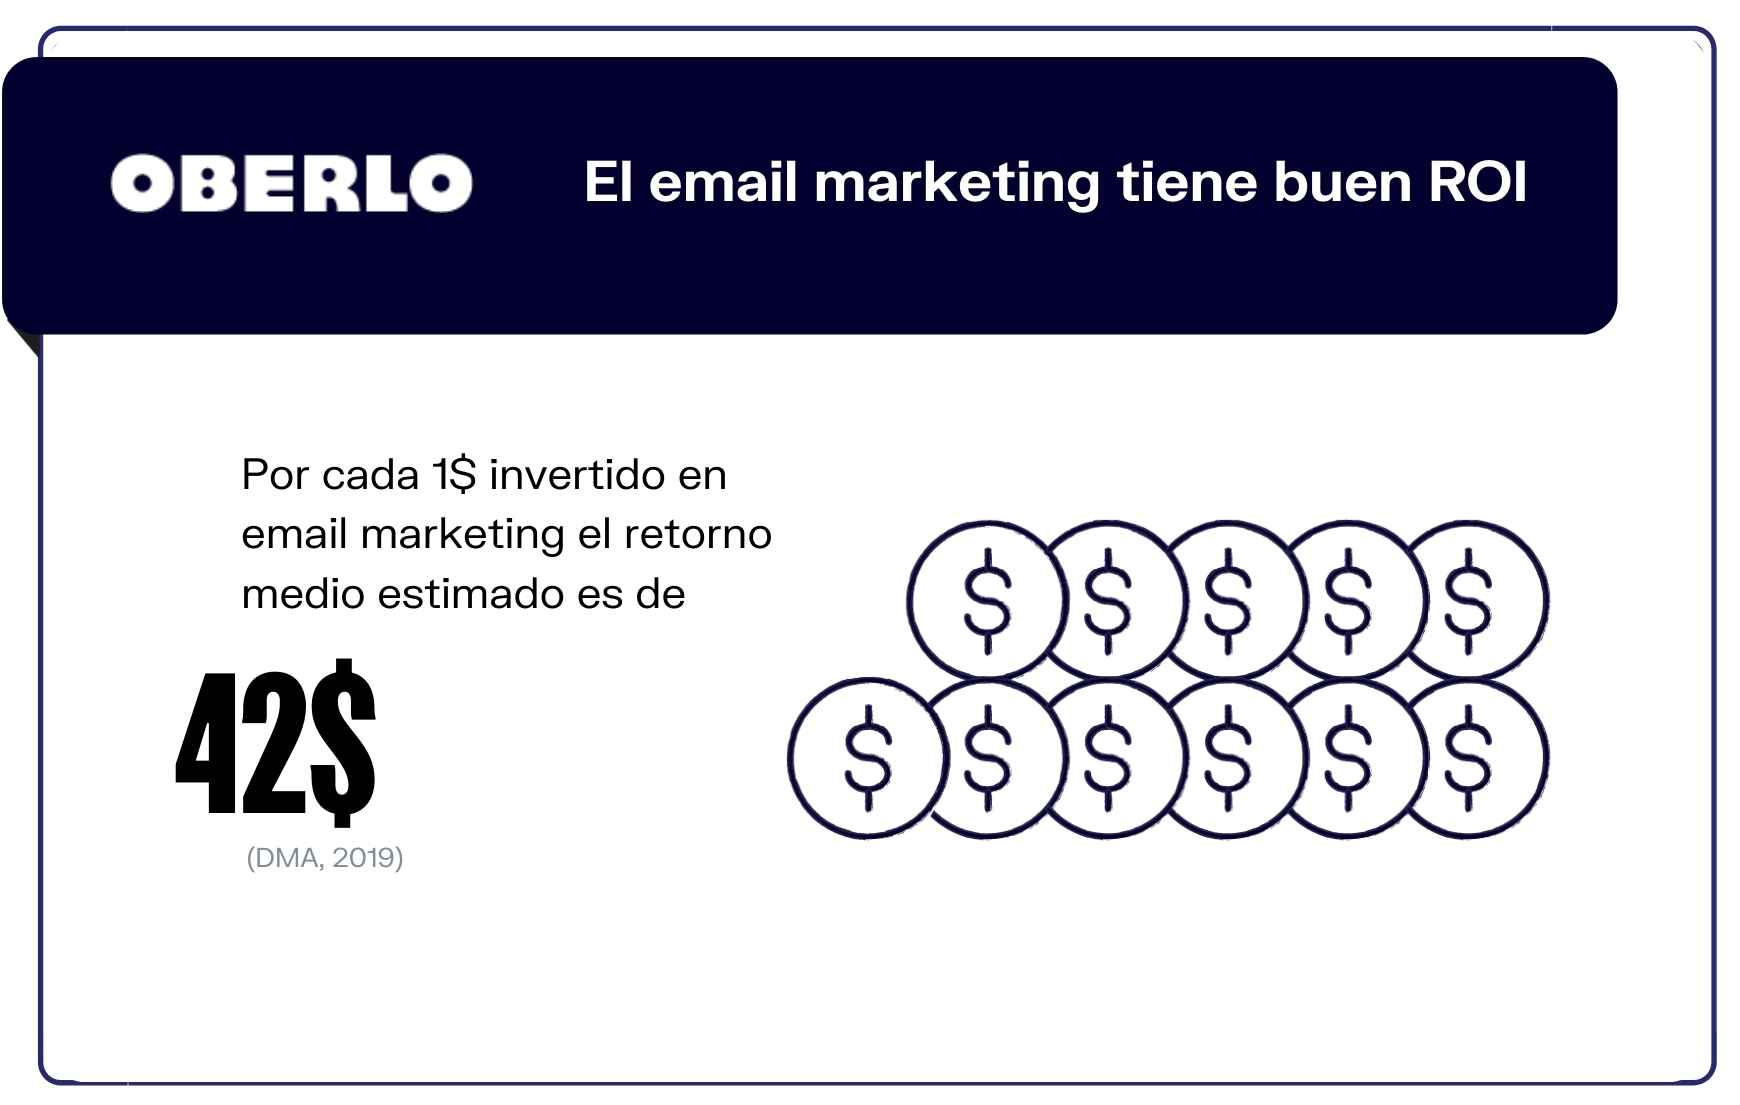 Datos de email marketing